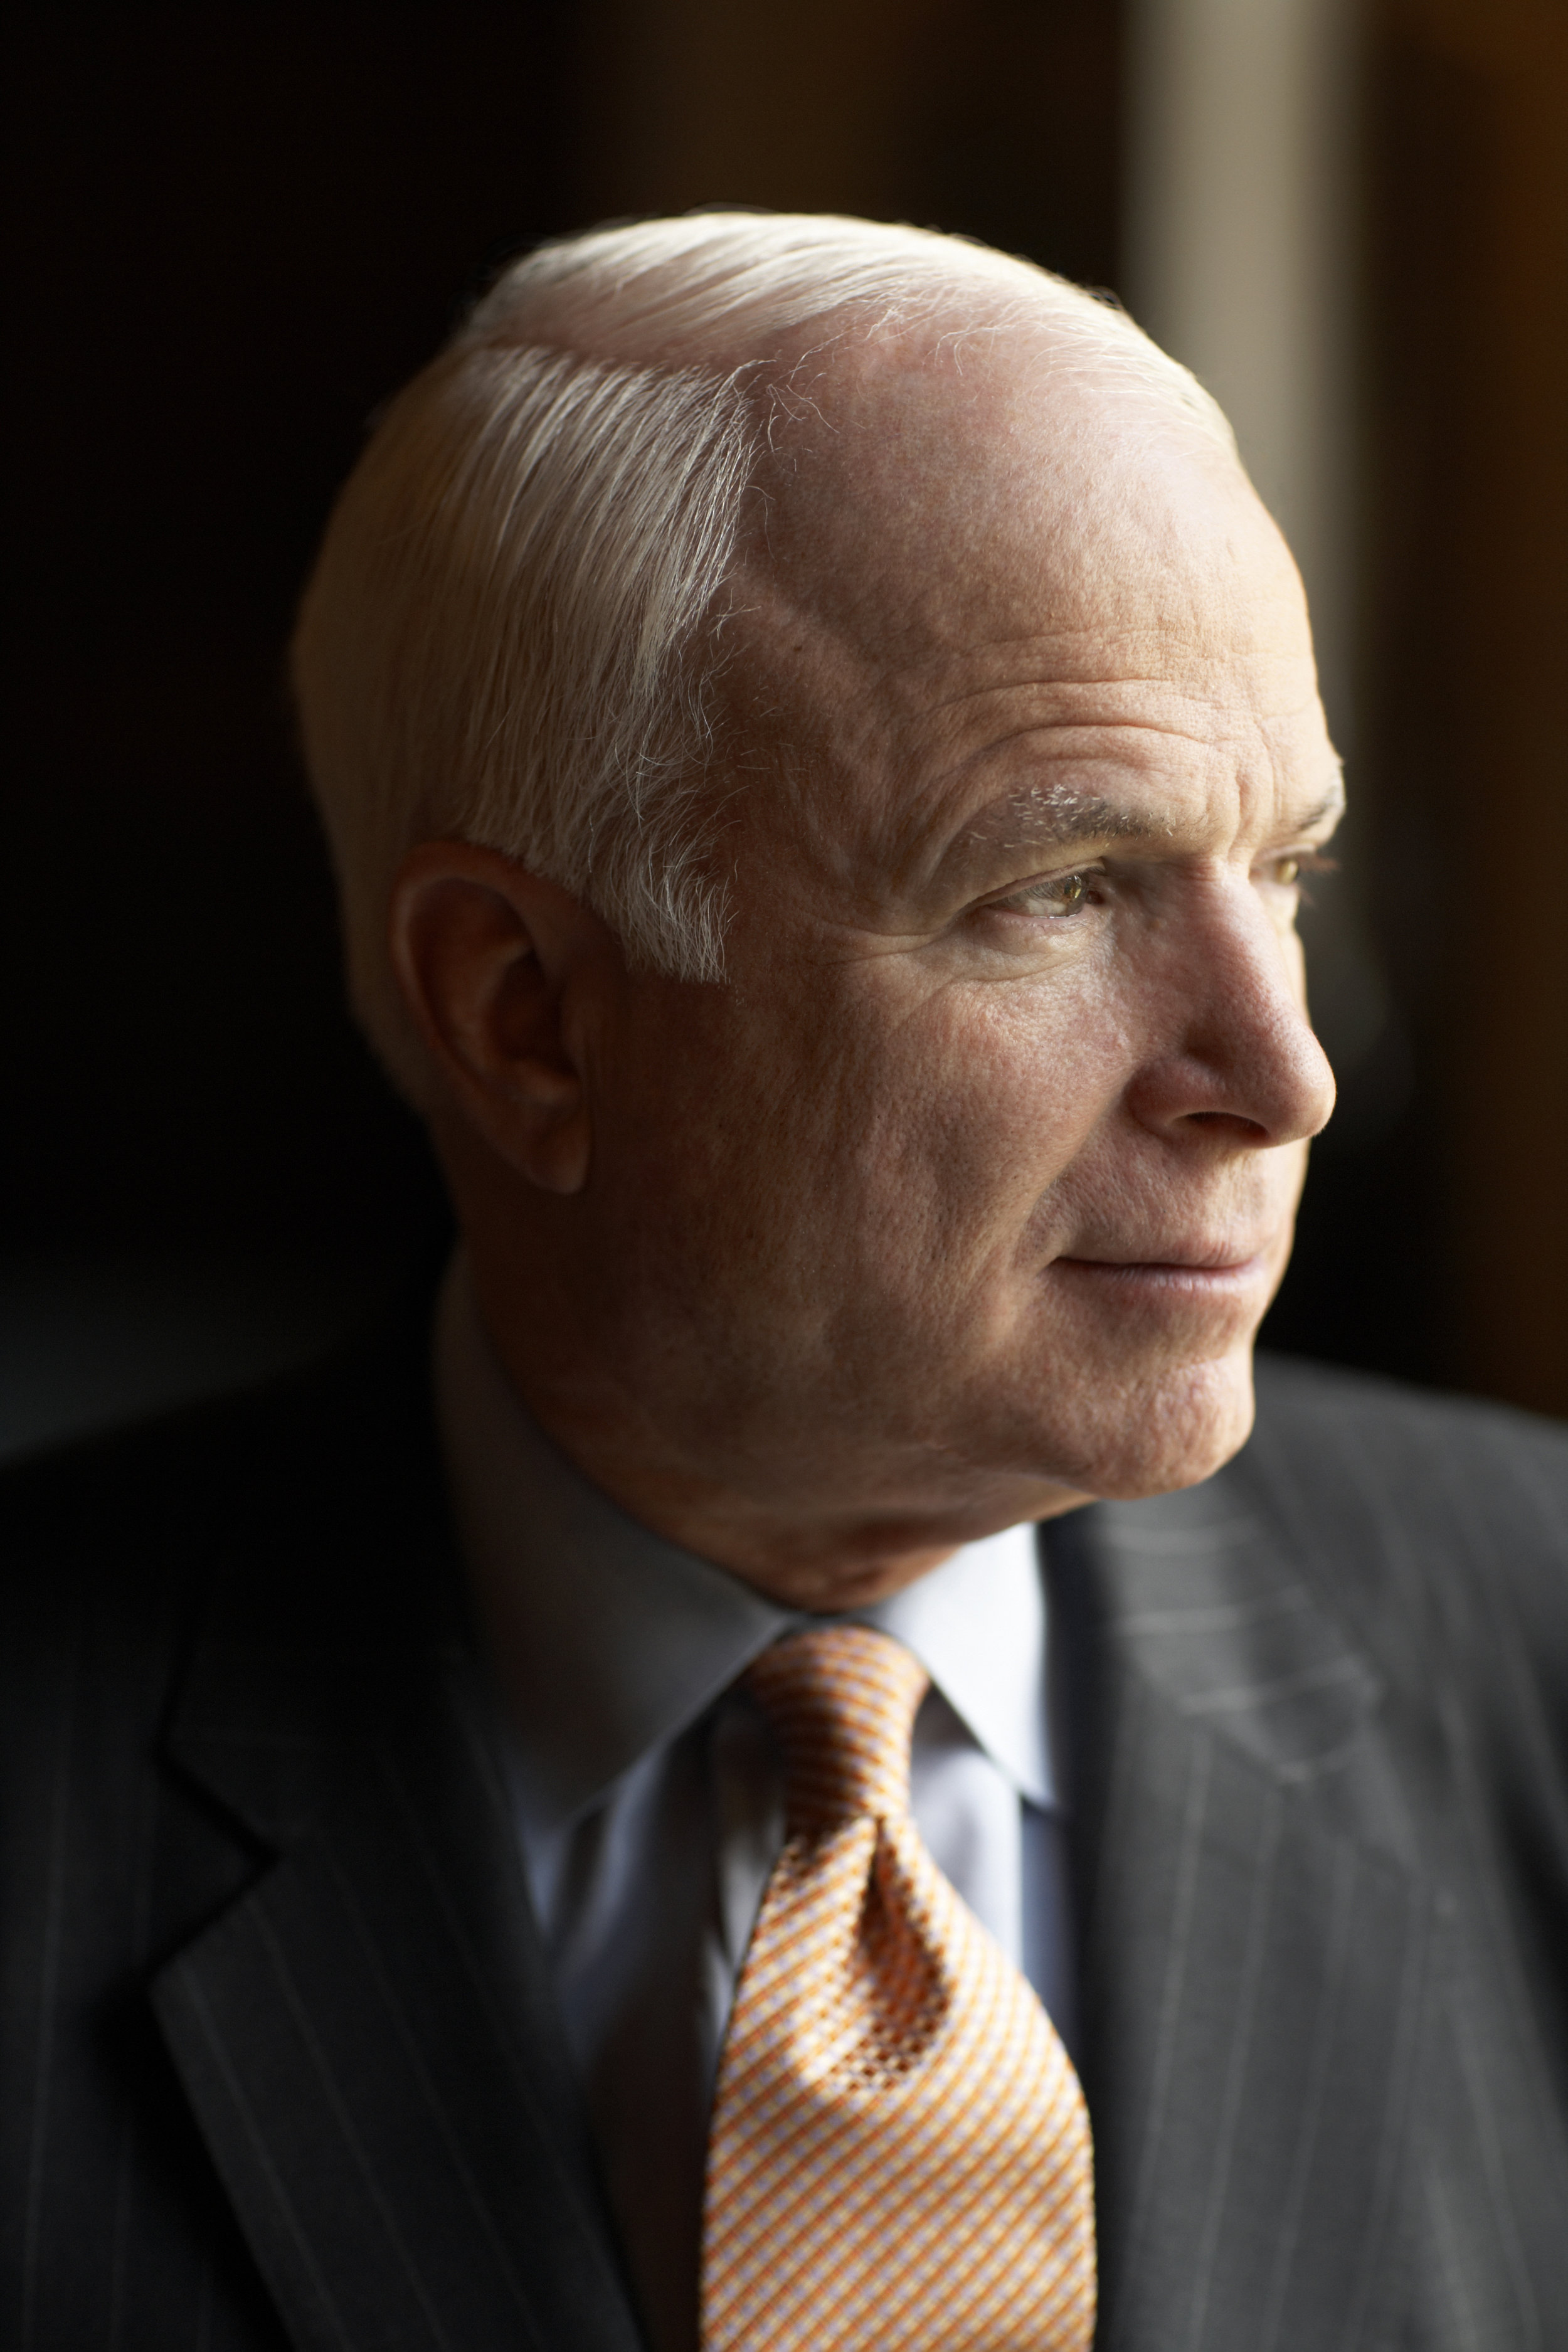 Source: JohnMcCain.com